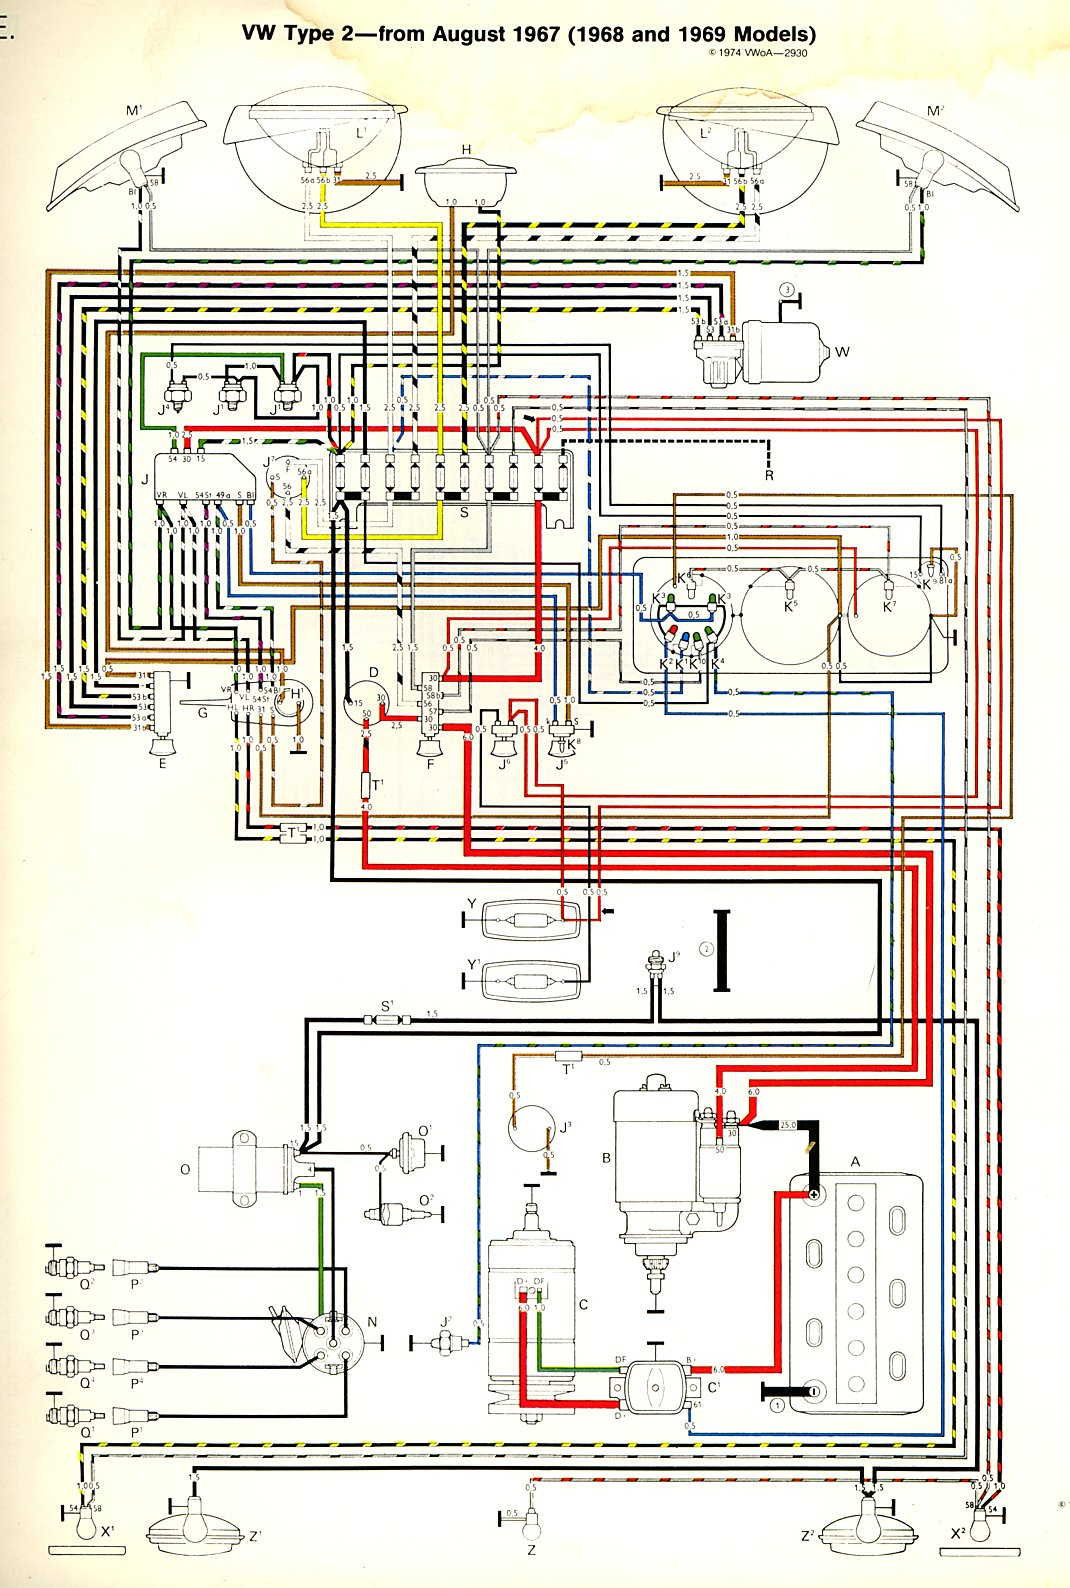 baybus_6869a 1972 beetle wiring diagram vw beetle wiring \u2022 free wiring diagrams 1975 vw beetle wiring harness at edmiracle.co